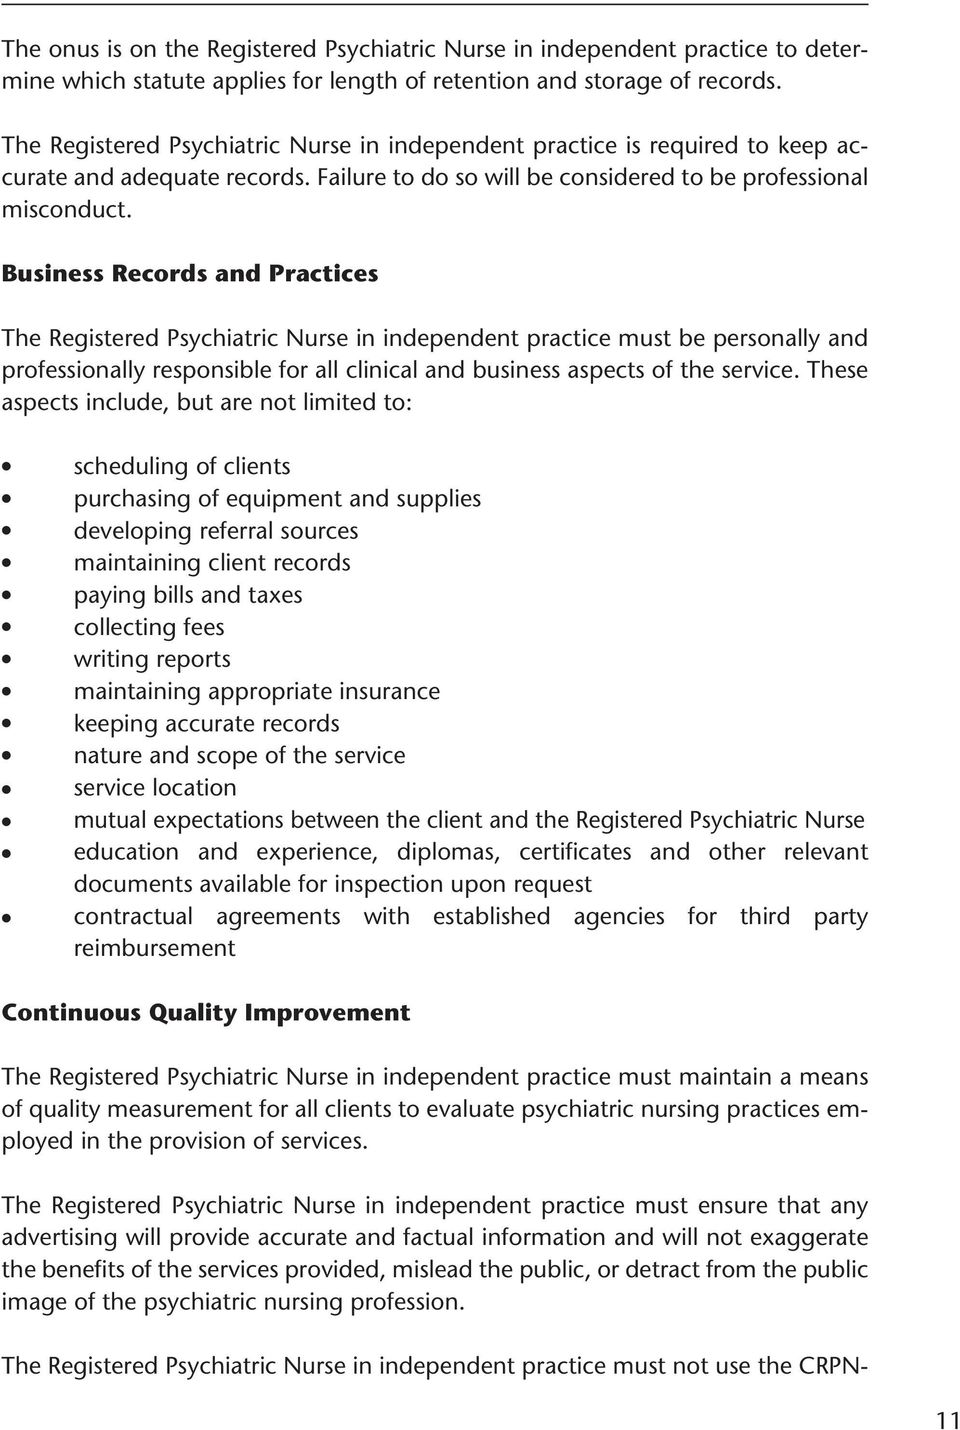 Business Records and Practices The Registered Psychiatric Nurse in independent practice must be personay and professionay responsibe for a cinica and business aspects of the service.